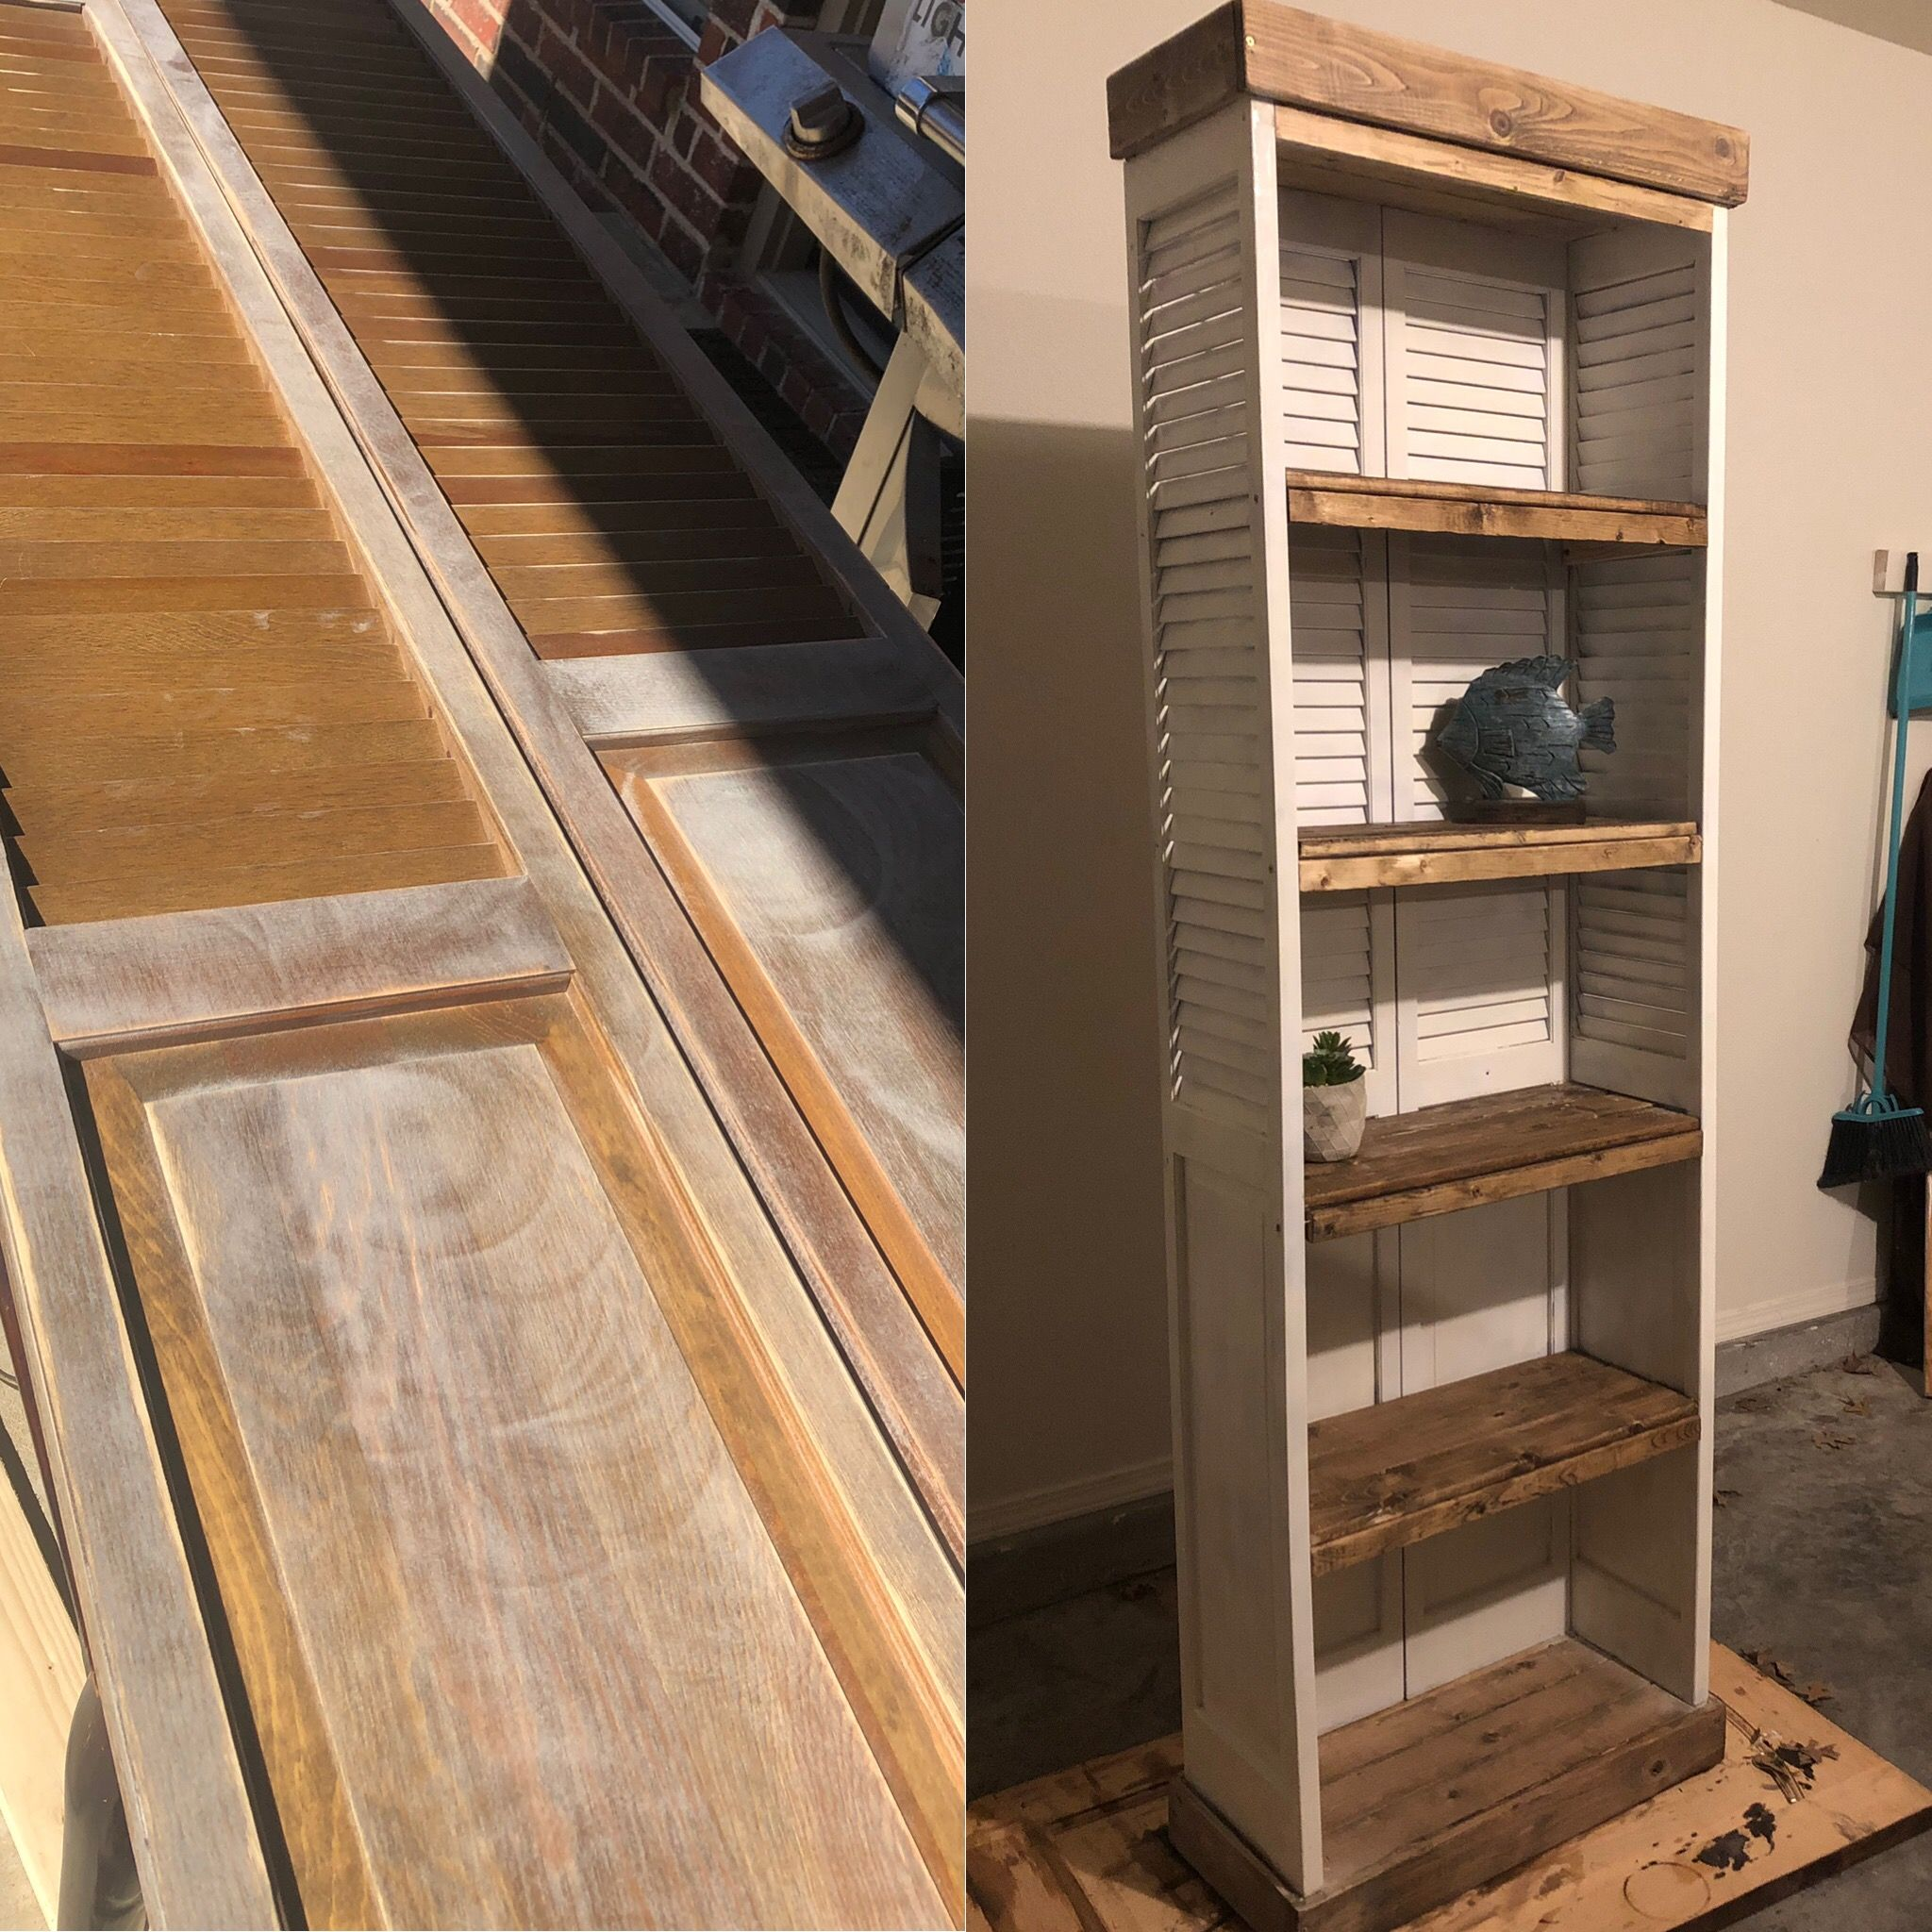 Old Closet Doors I Turned Into Bookcases Old Closet Doors Furniture Projects Closet Doors